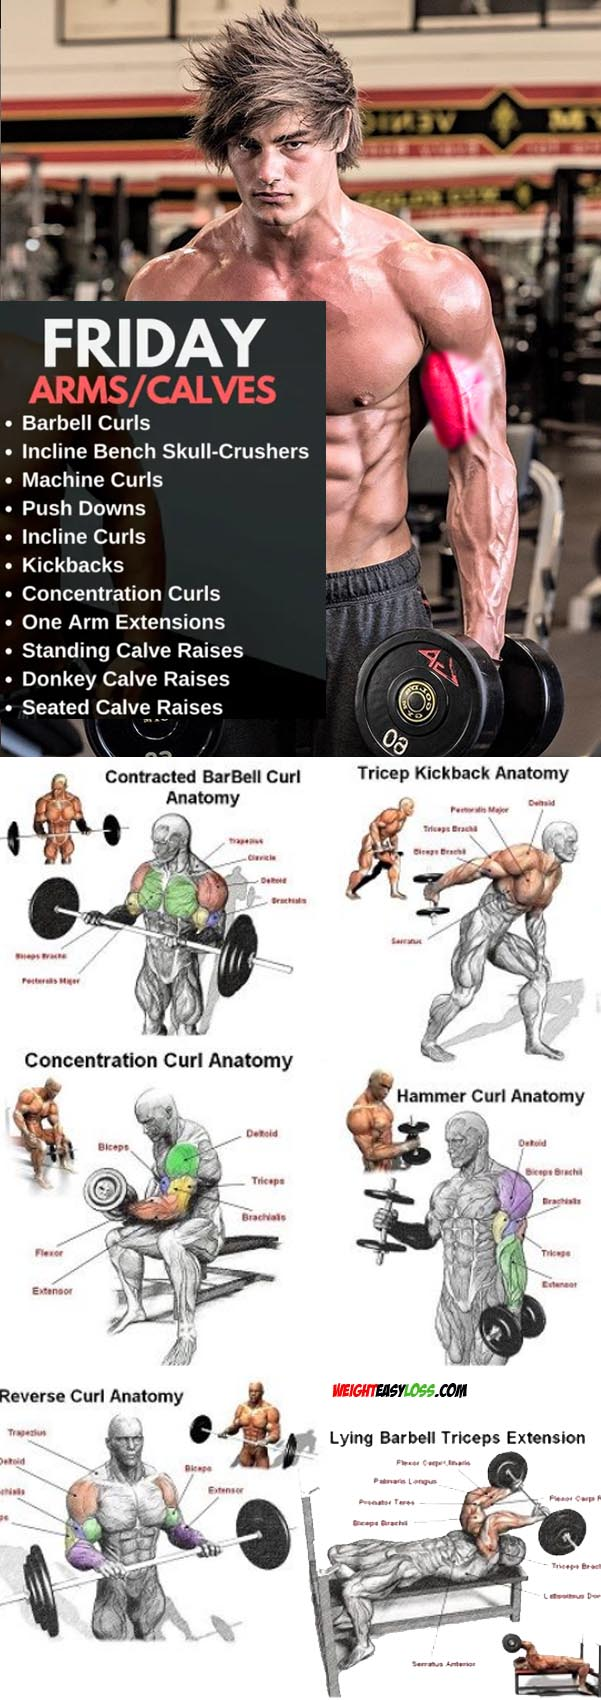 Biceps Day Exercises